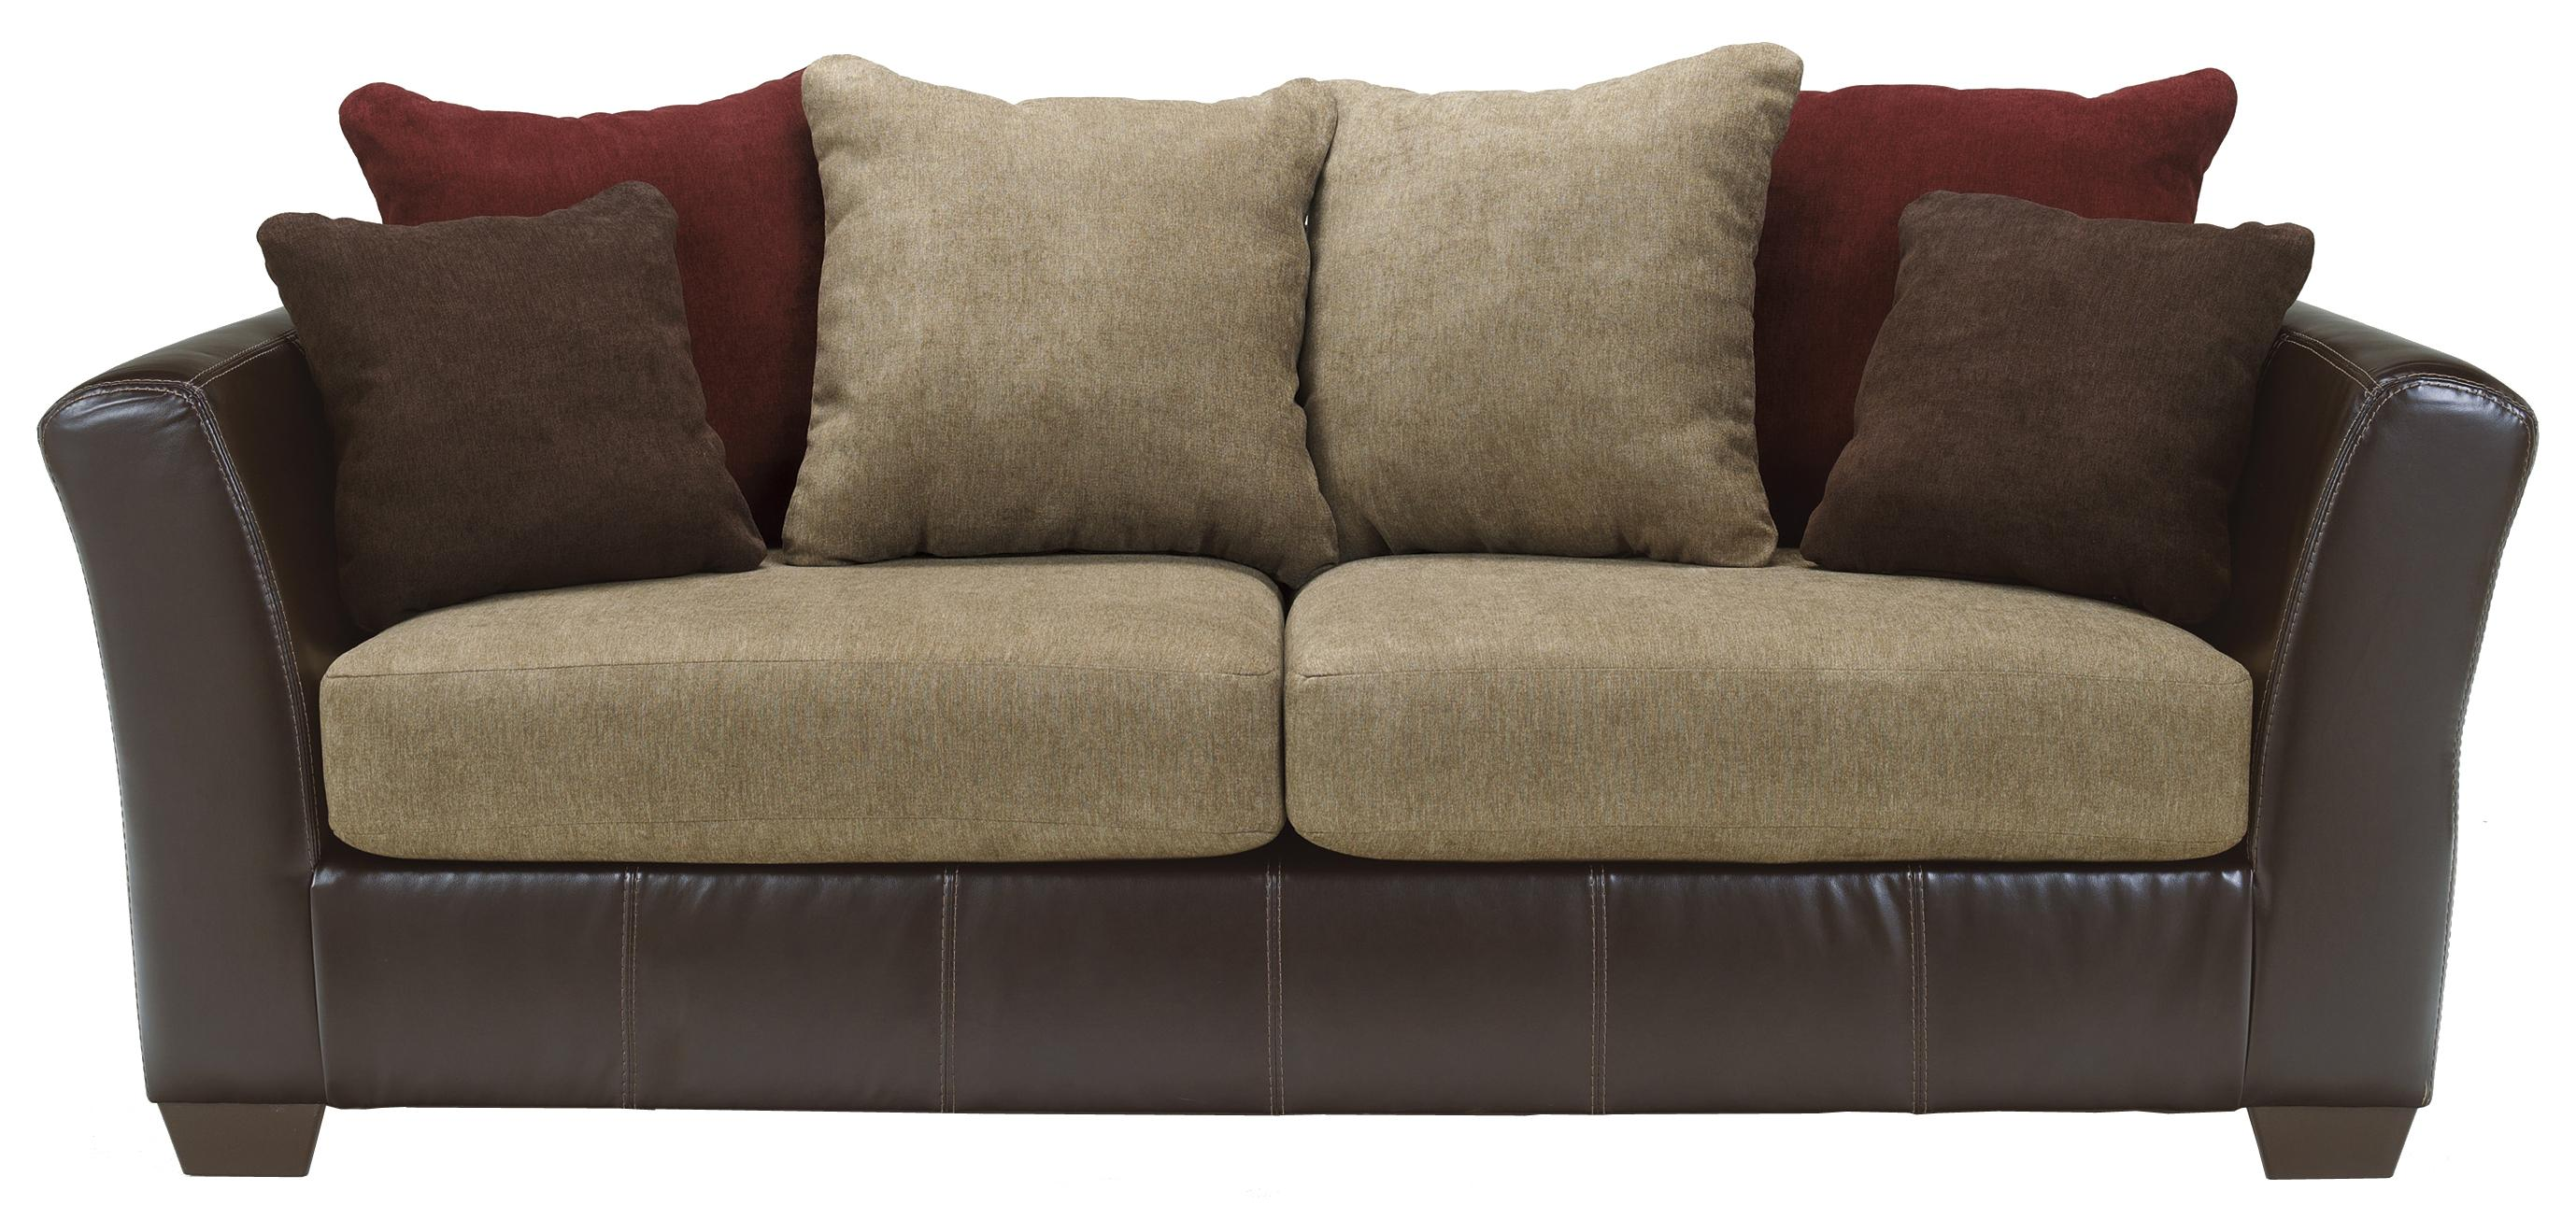 Ashley Furniture Sanya - Mocha Sofa - Item Number: 2840038